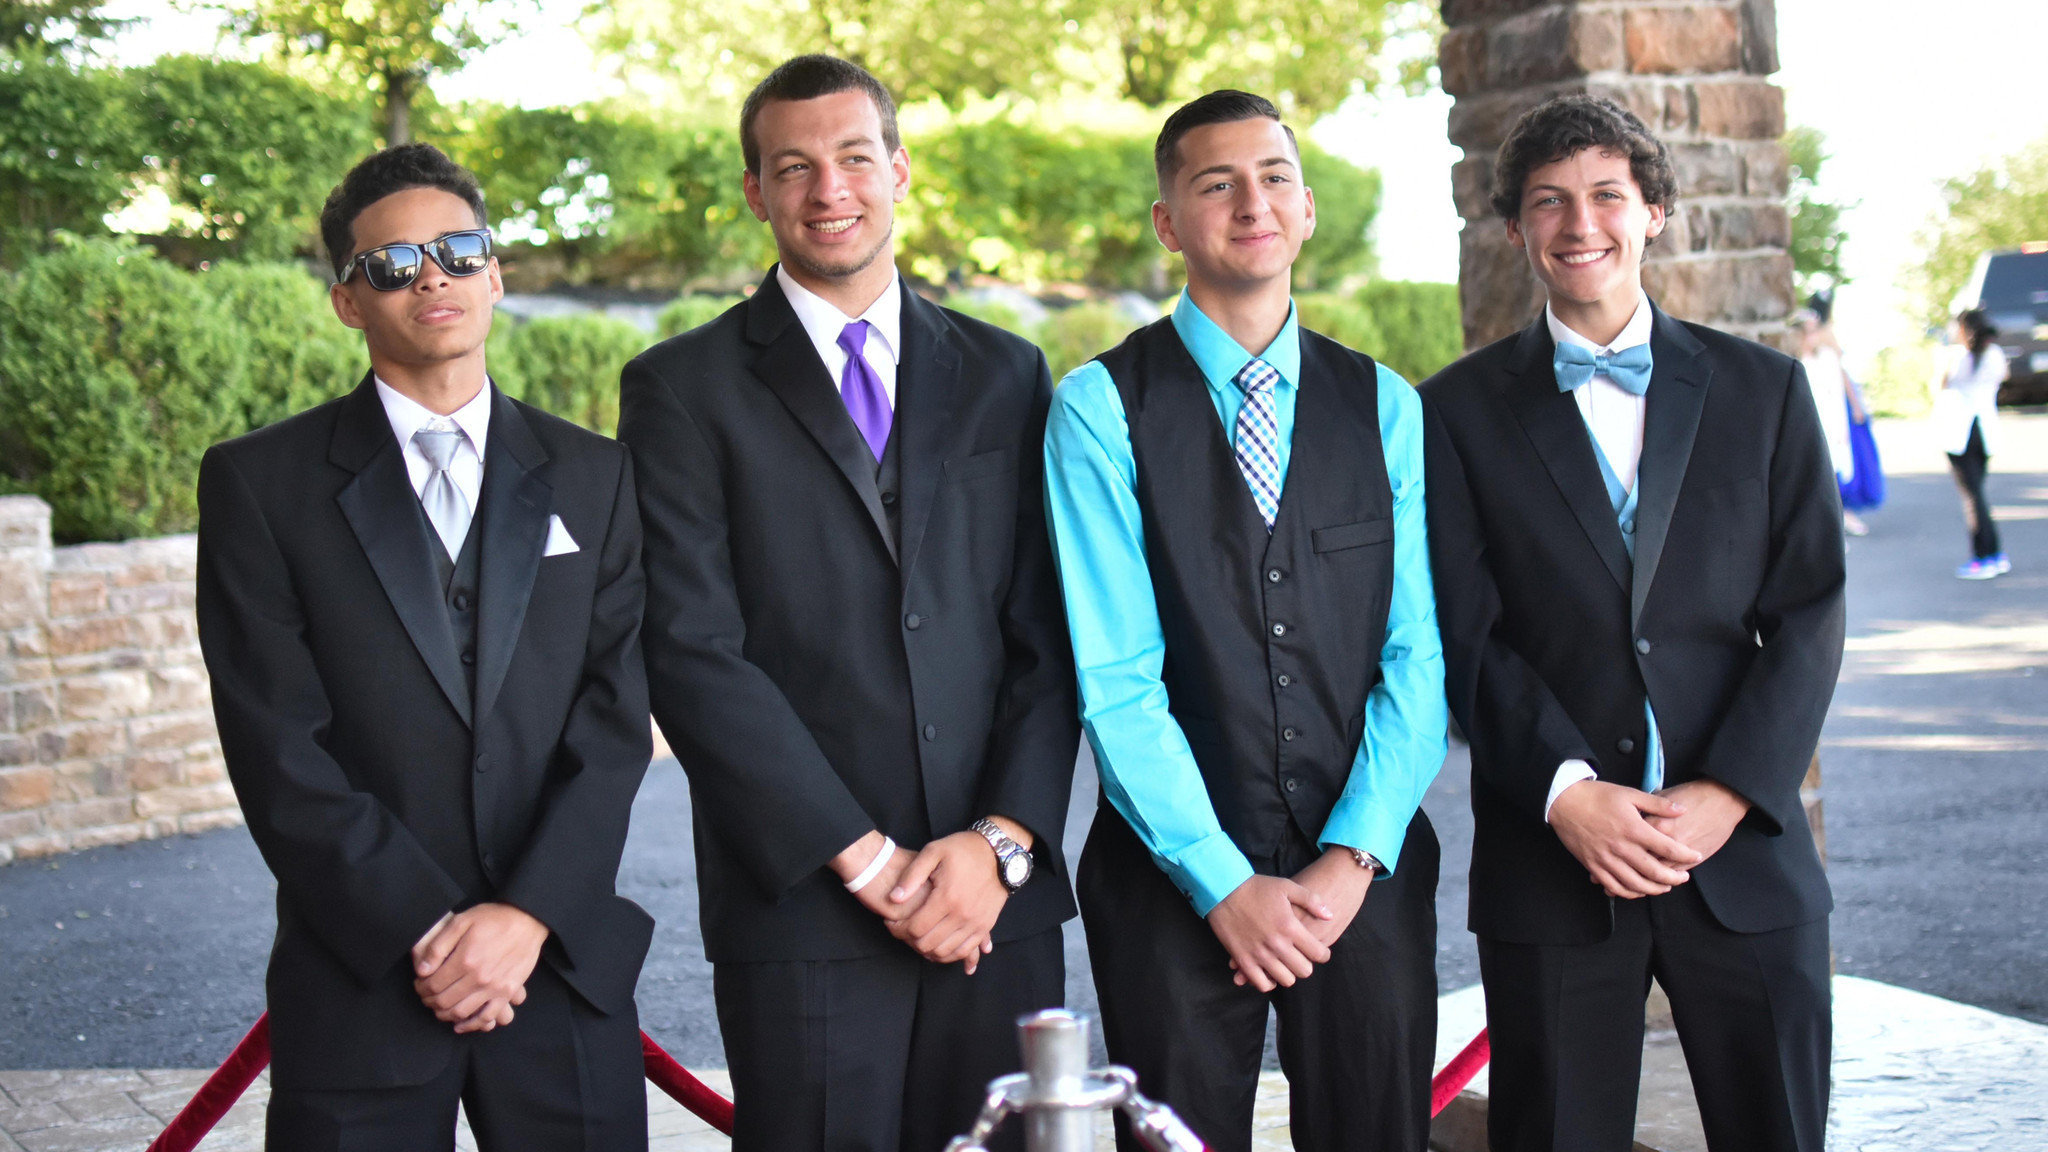 Whitehall High School Prom Photos 2015 The Morning Call